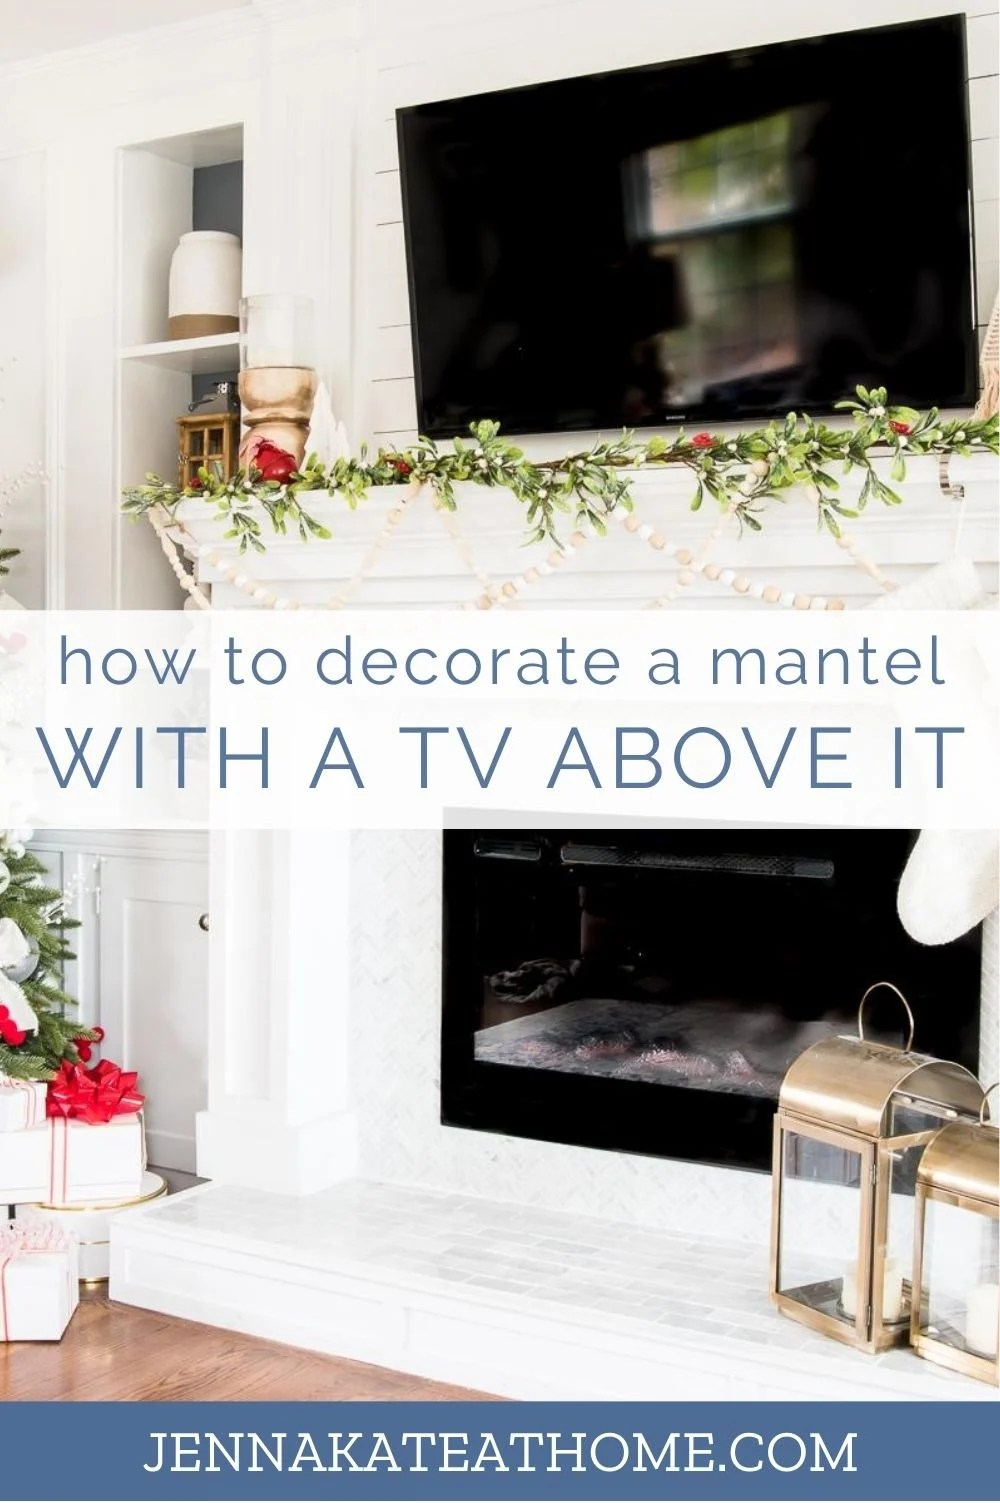 learn how to decorate a mantel with a TV over it